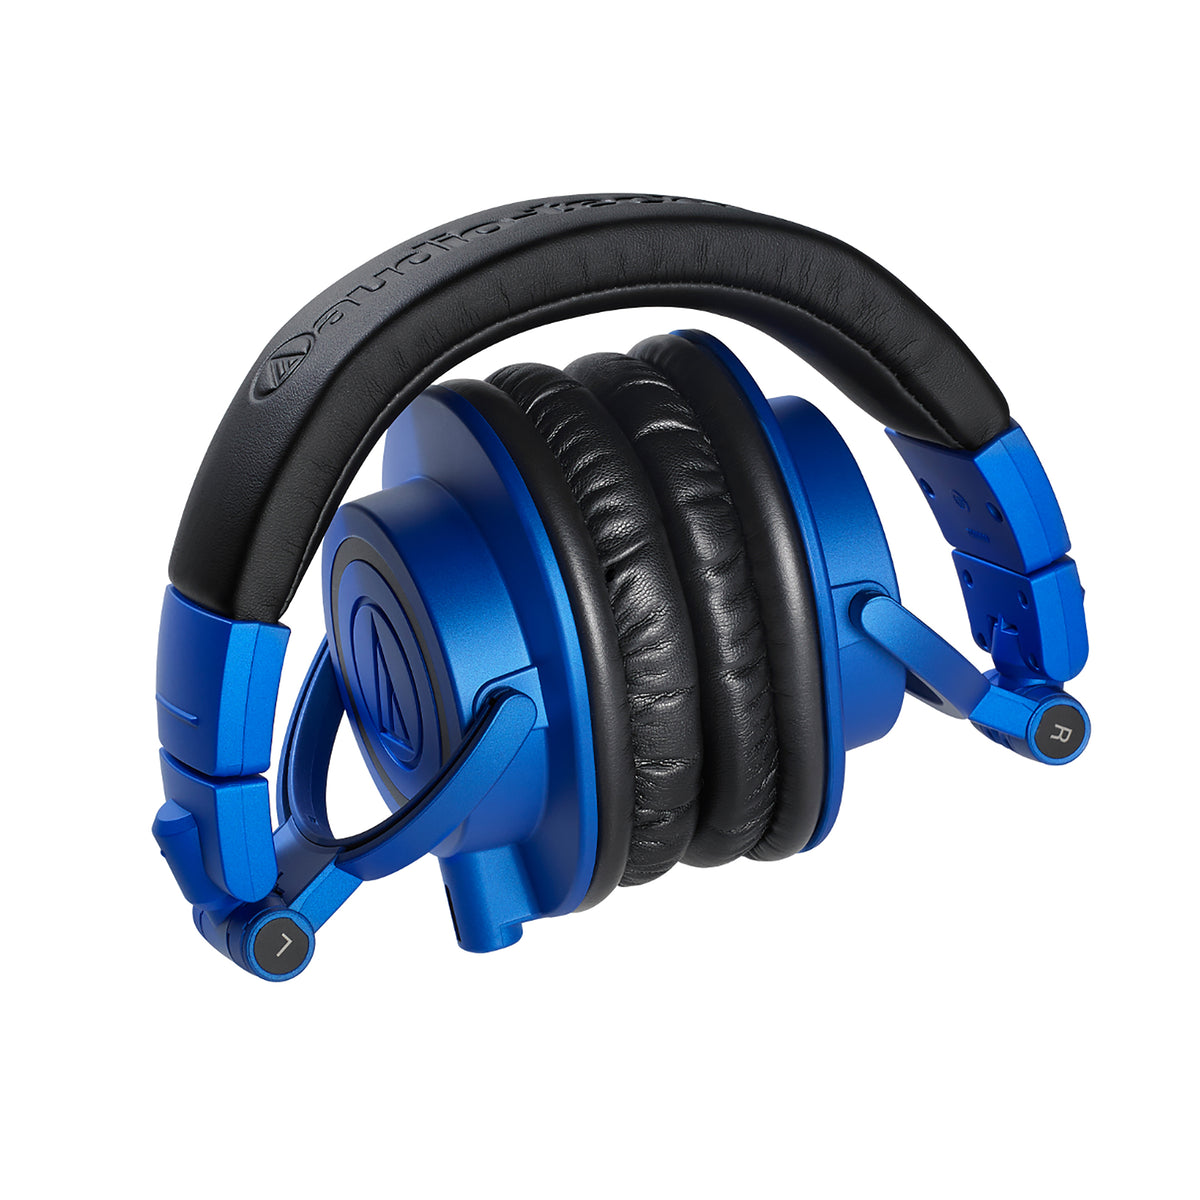 Audio-Technica: ATH-M50XBB Professional Monitor Headphones - Blue & Black